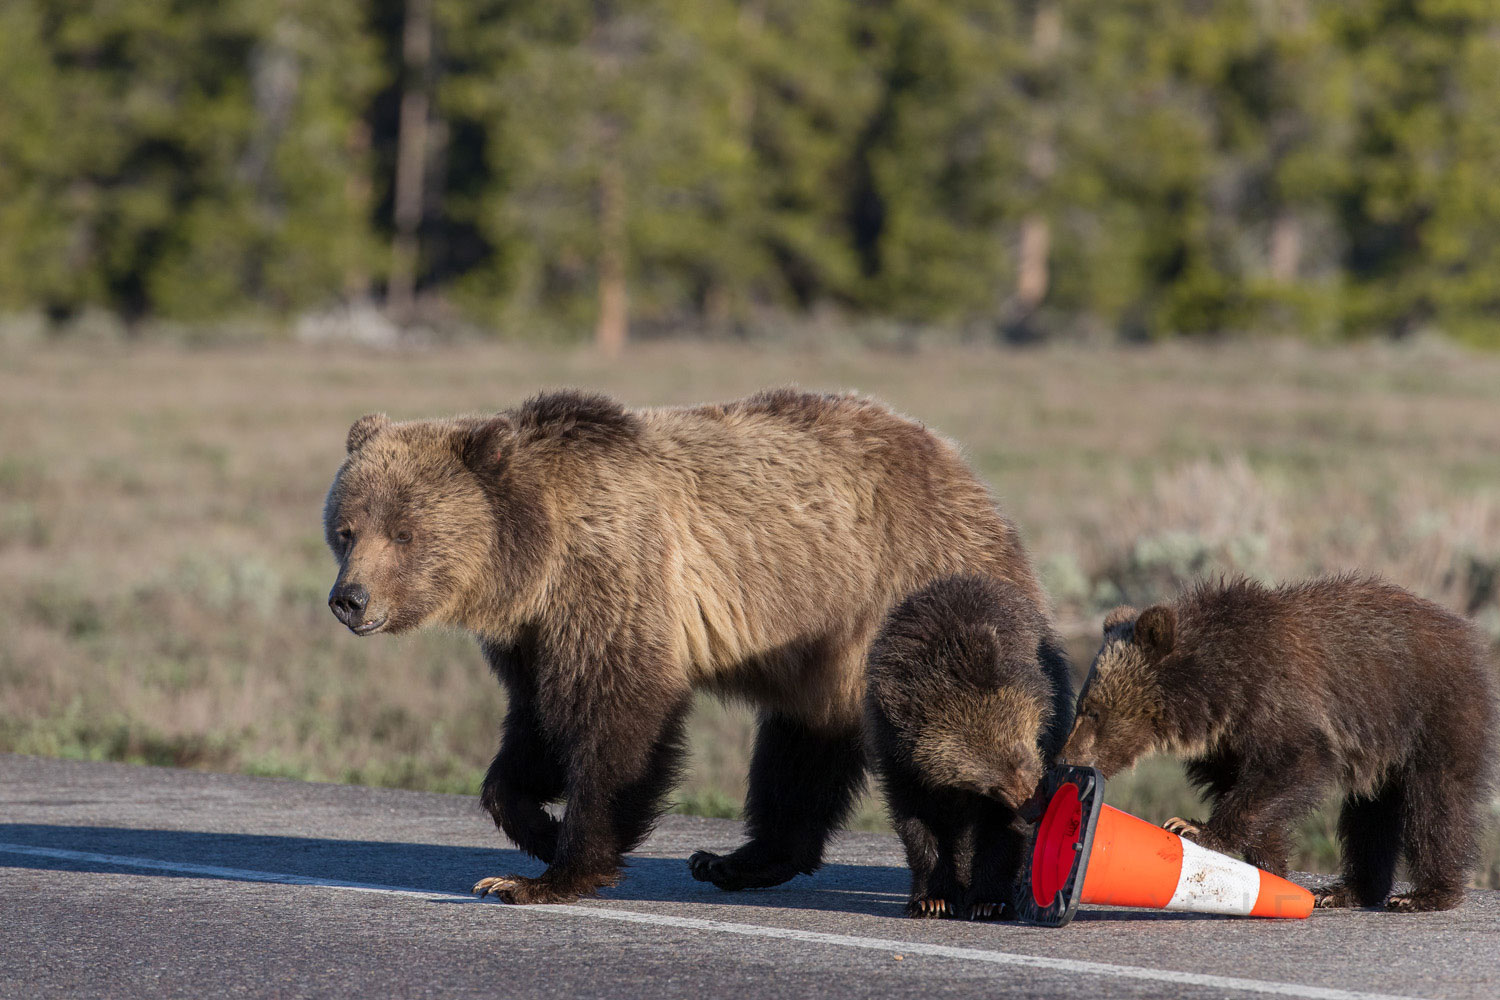 blondie, grizzly, bear, cub, grand teton, photo, image, spring, 2018, Tetons, photo